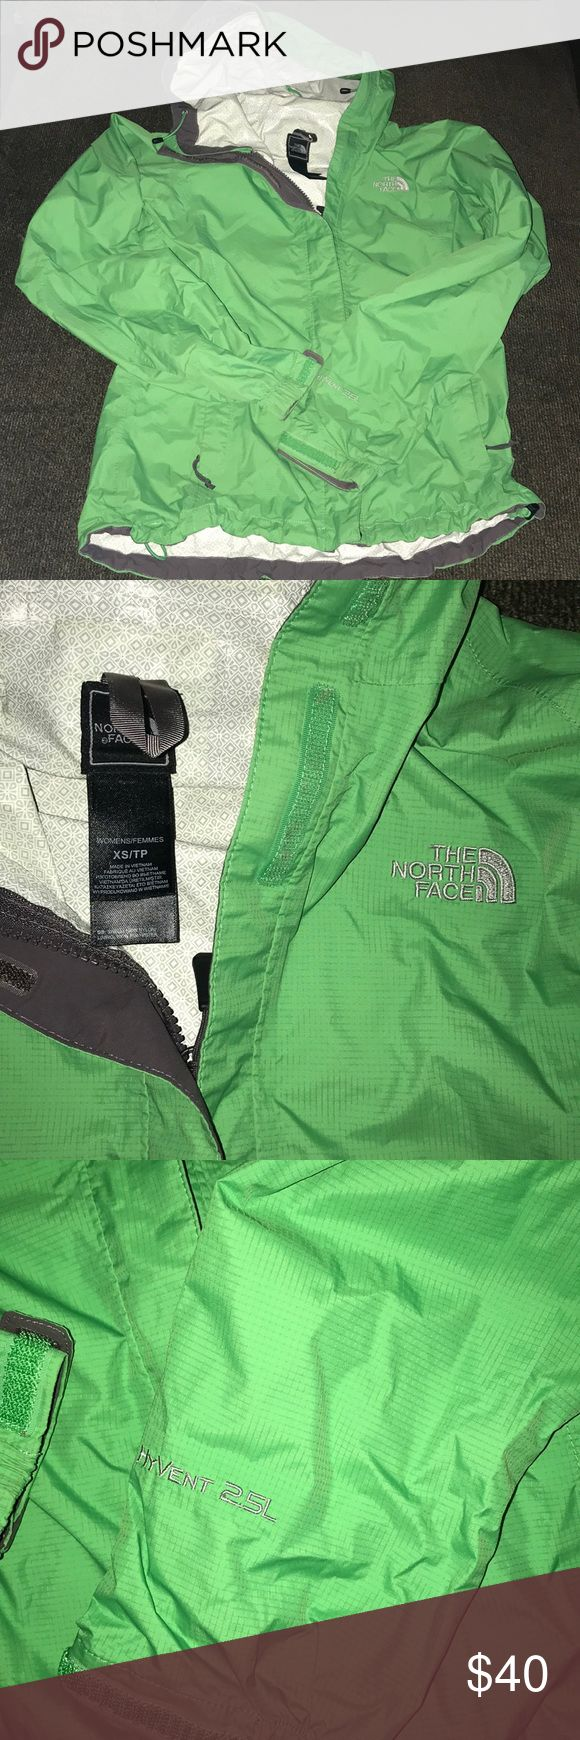 North Face HyVent 2.5L Rain Jacket Size XS Excellent condition. No Flaws. Pretty green color. Fits true to size. All zippers and closures work perfectly. Lowest offer is the price listed. No trades or Mercari. Price firm unless bundled. No offers on bundles that are already discounted. North Face Jackets & Coats